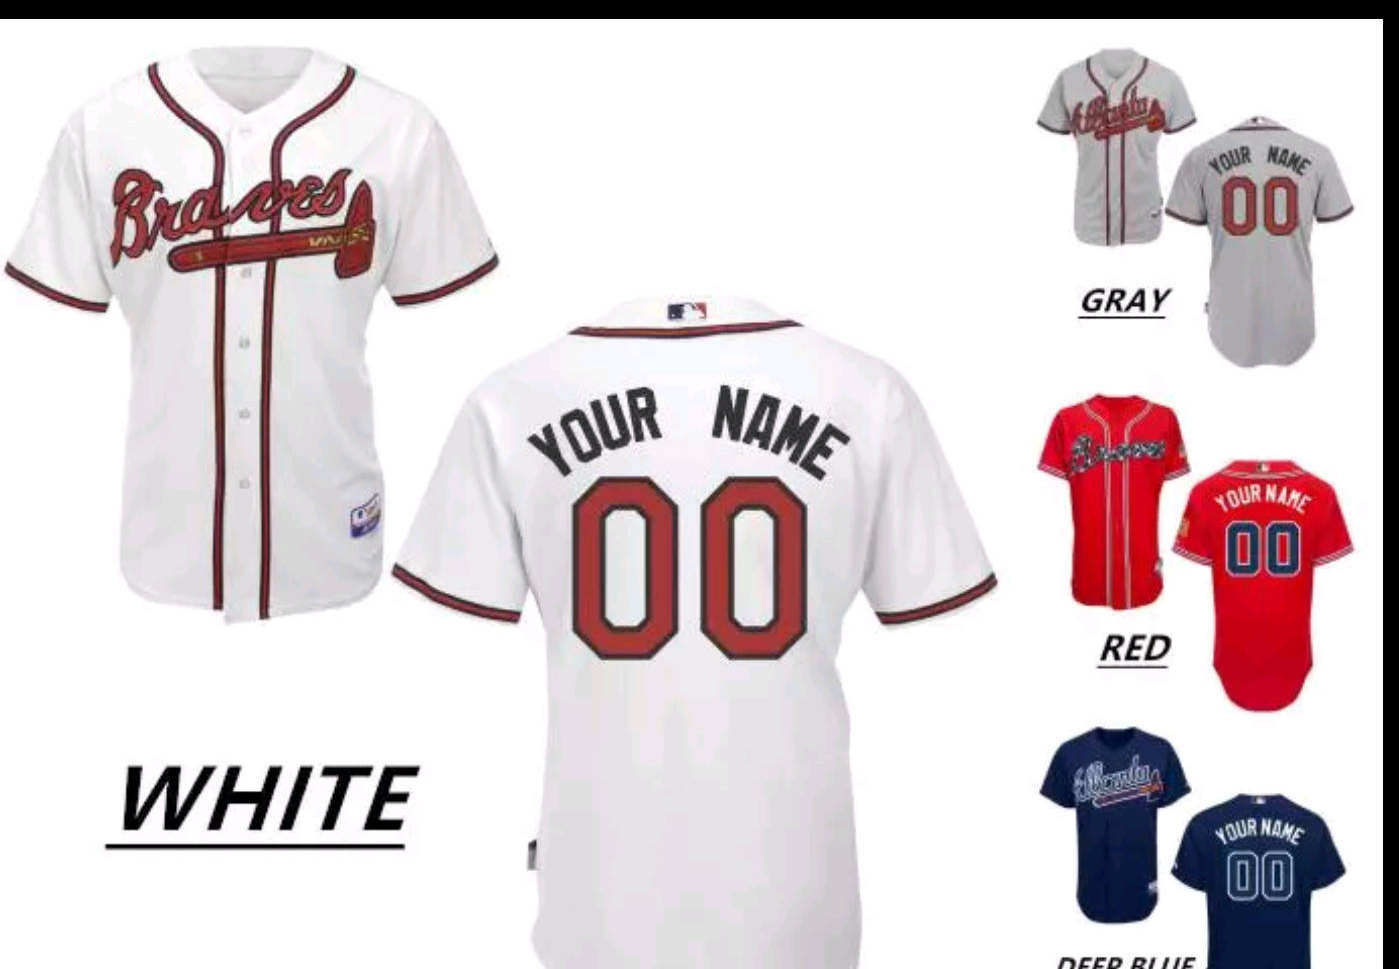 sale retailer 1e166 2a024 Atlanta Braves Personalized Mens/Women/Youth Jersey S-XXXL Available Plain  or Customized Any Color/Name/Number, Including Yours sold by Treasure Bin